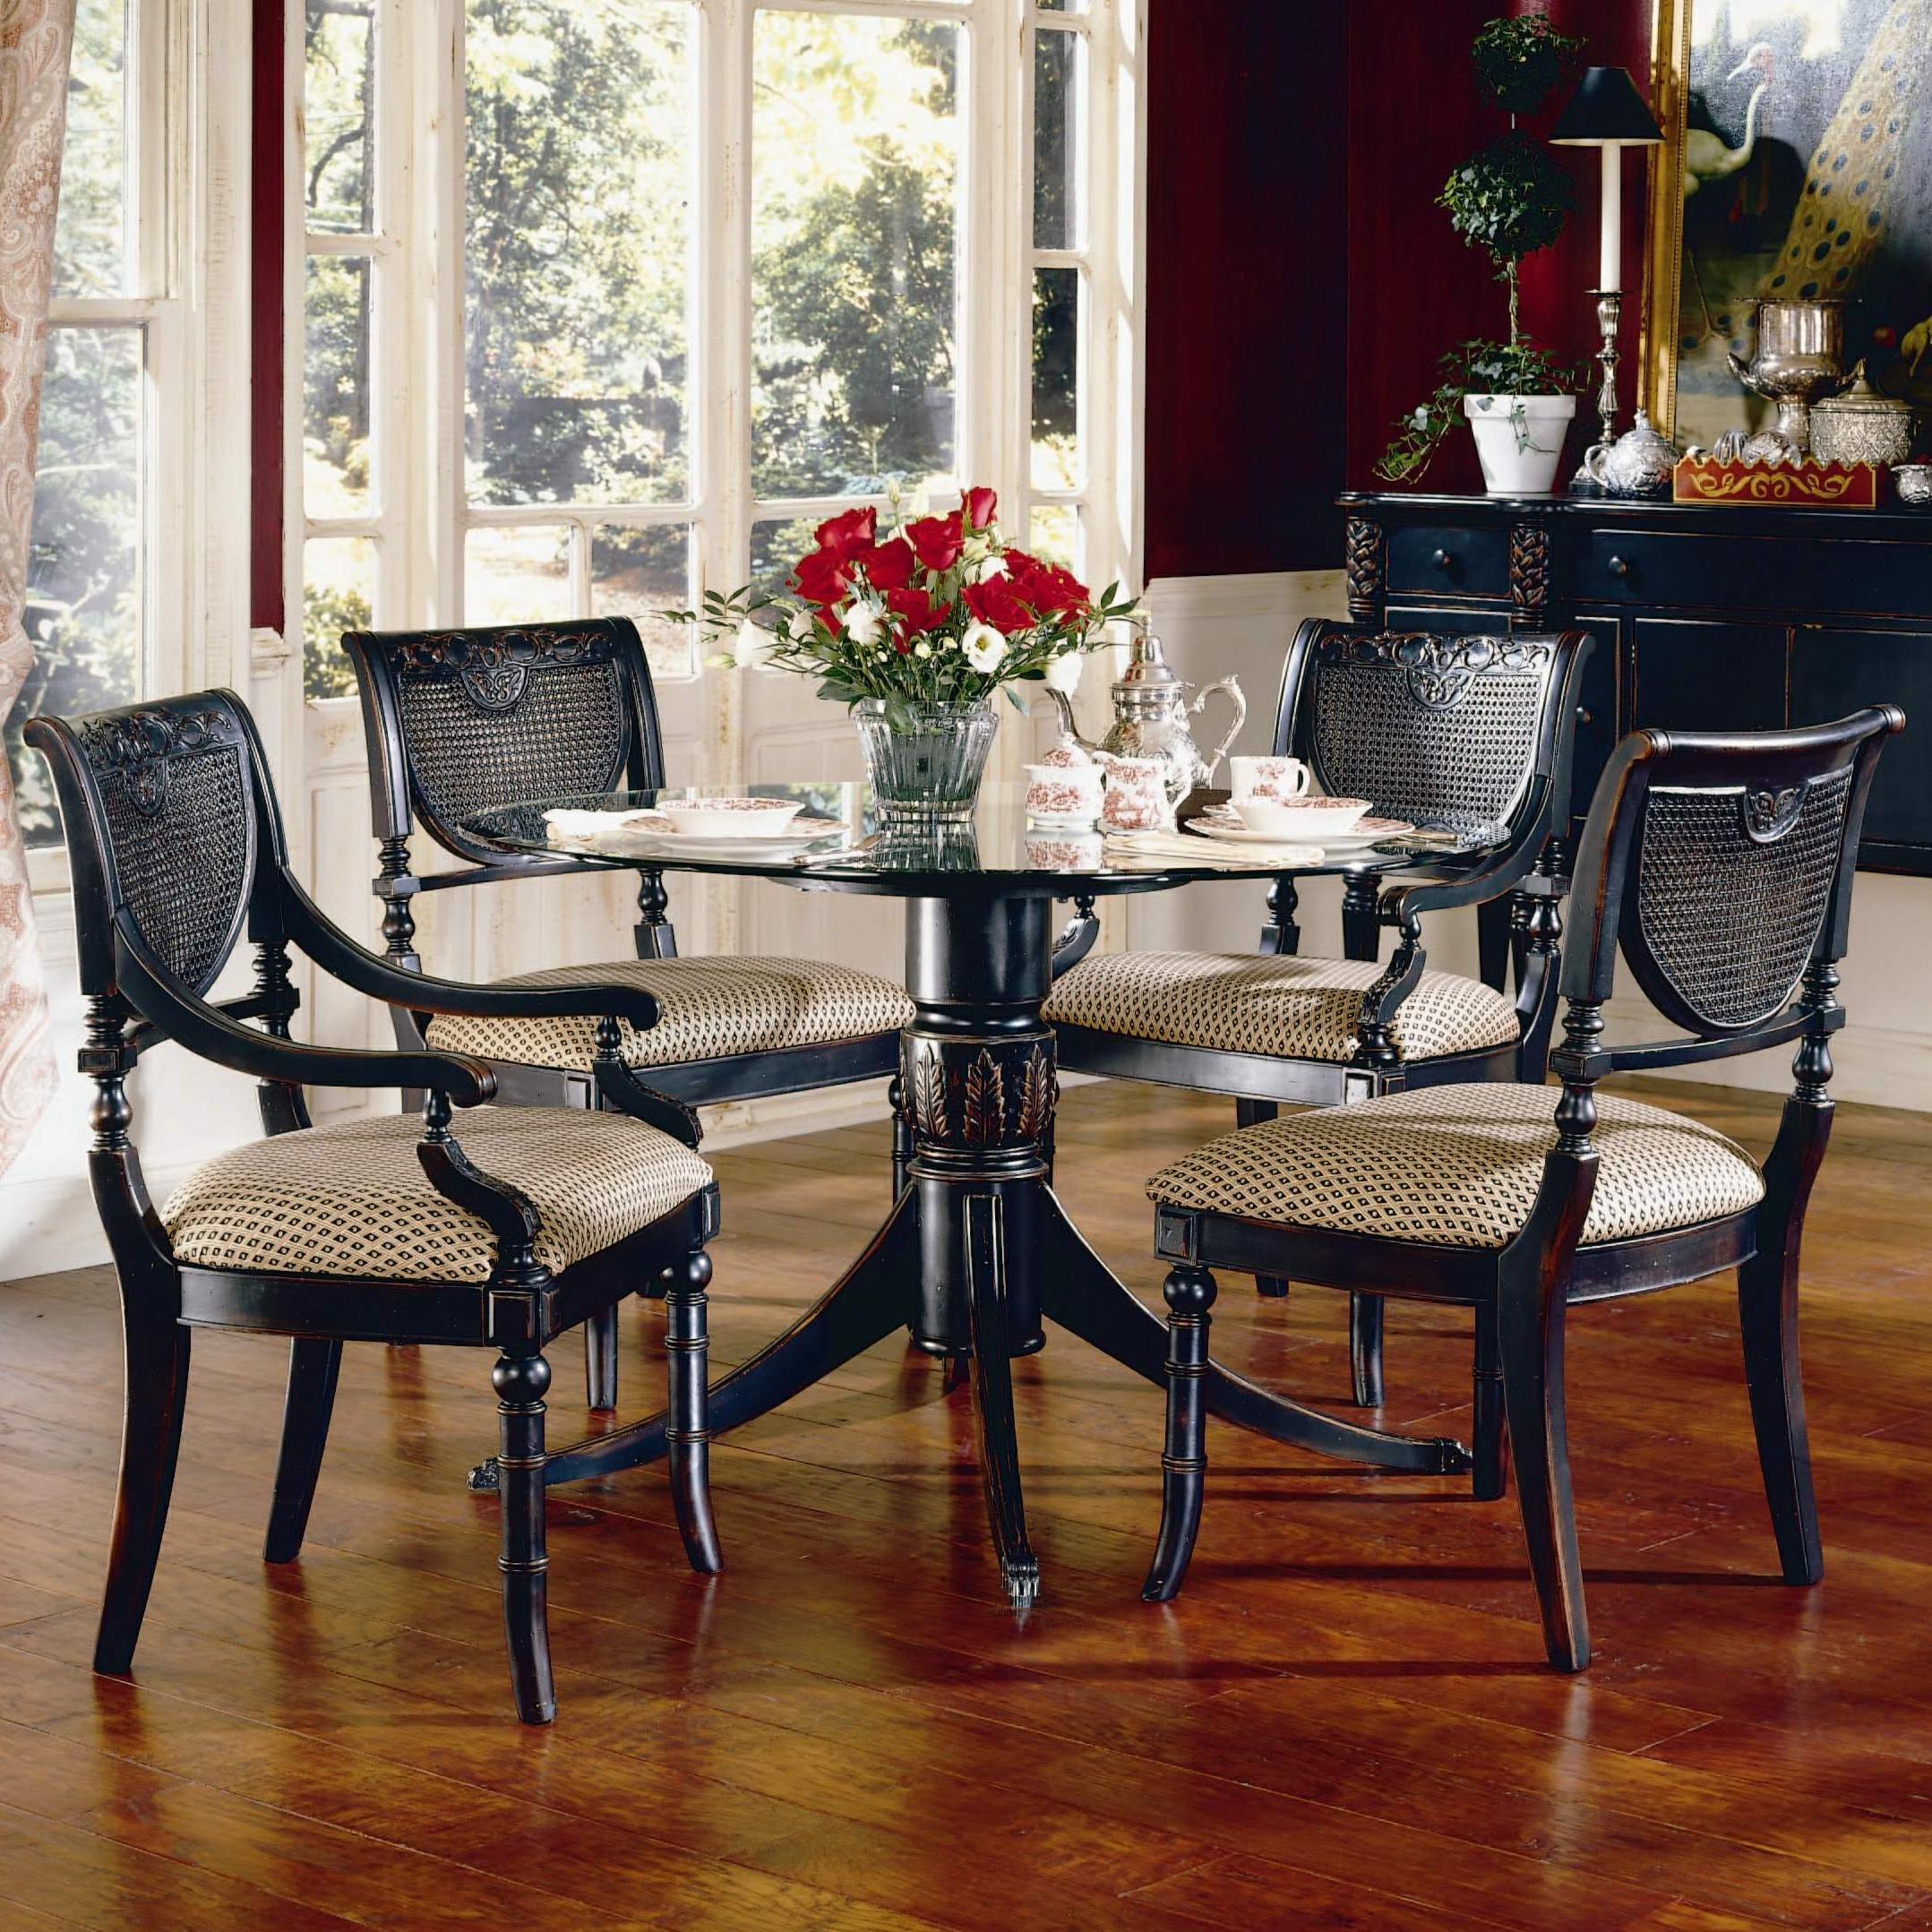 30 Dining Table Set Largo Heritage Five Piece Round Dining Table And Chair Set .